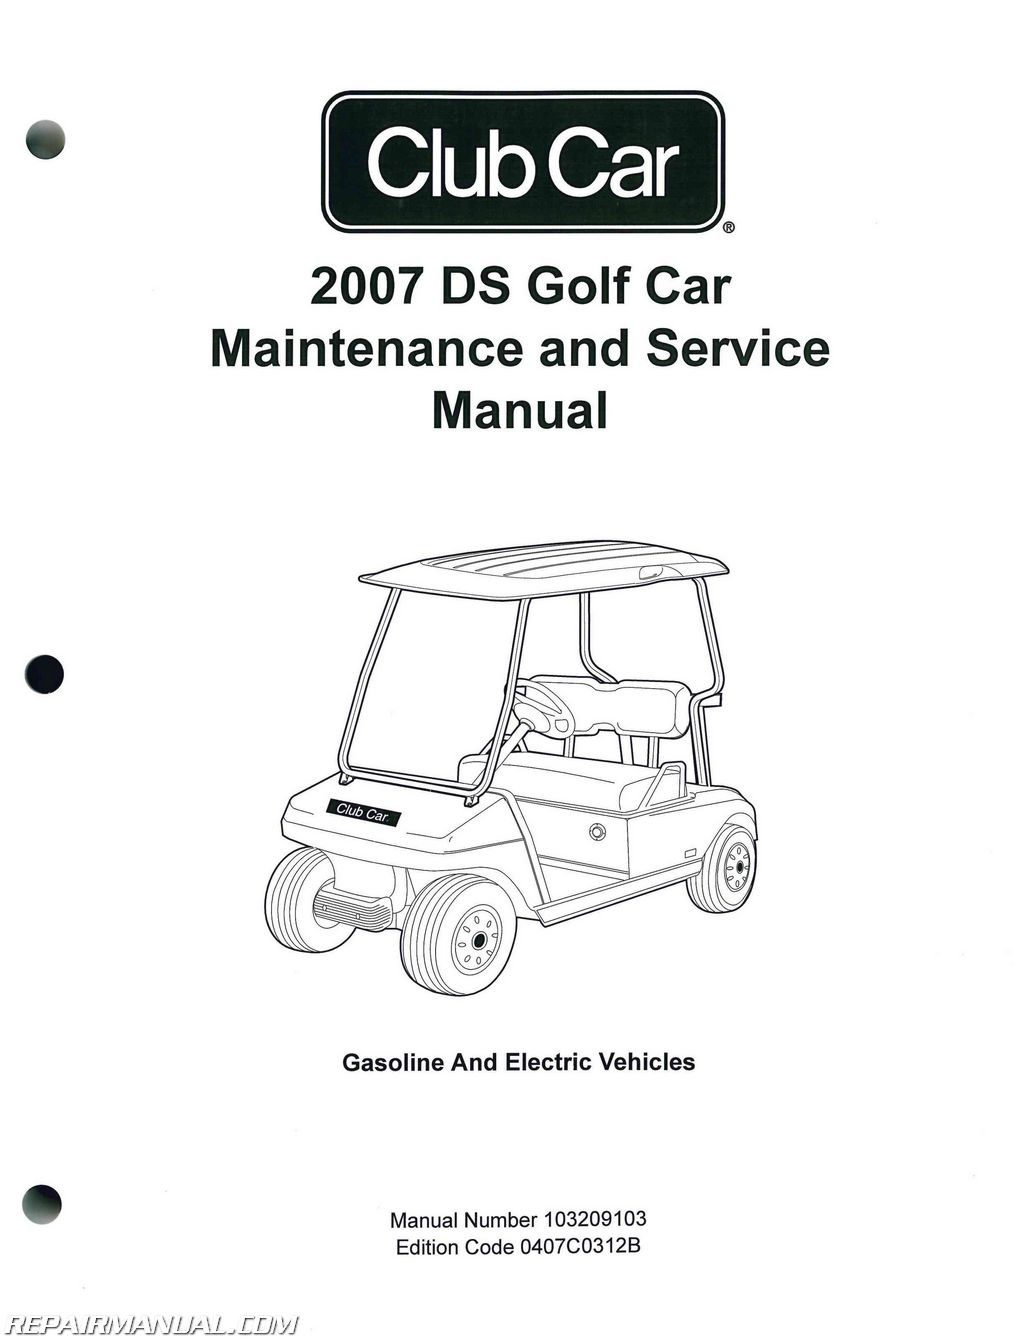 Club Car Ds Body Diagrams Club Car Body Removal Data Wiring